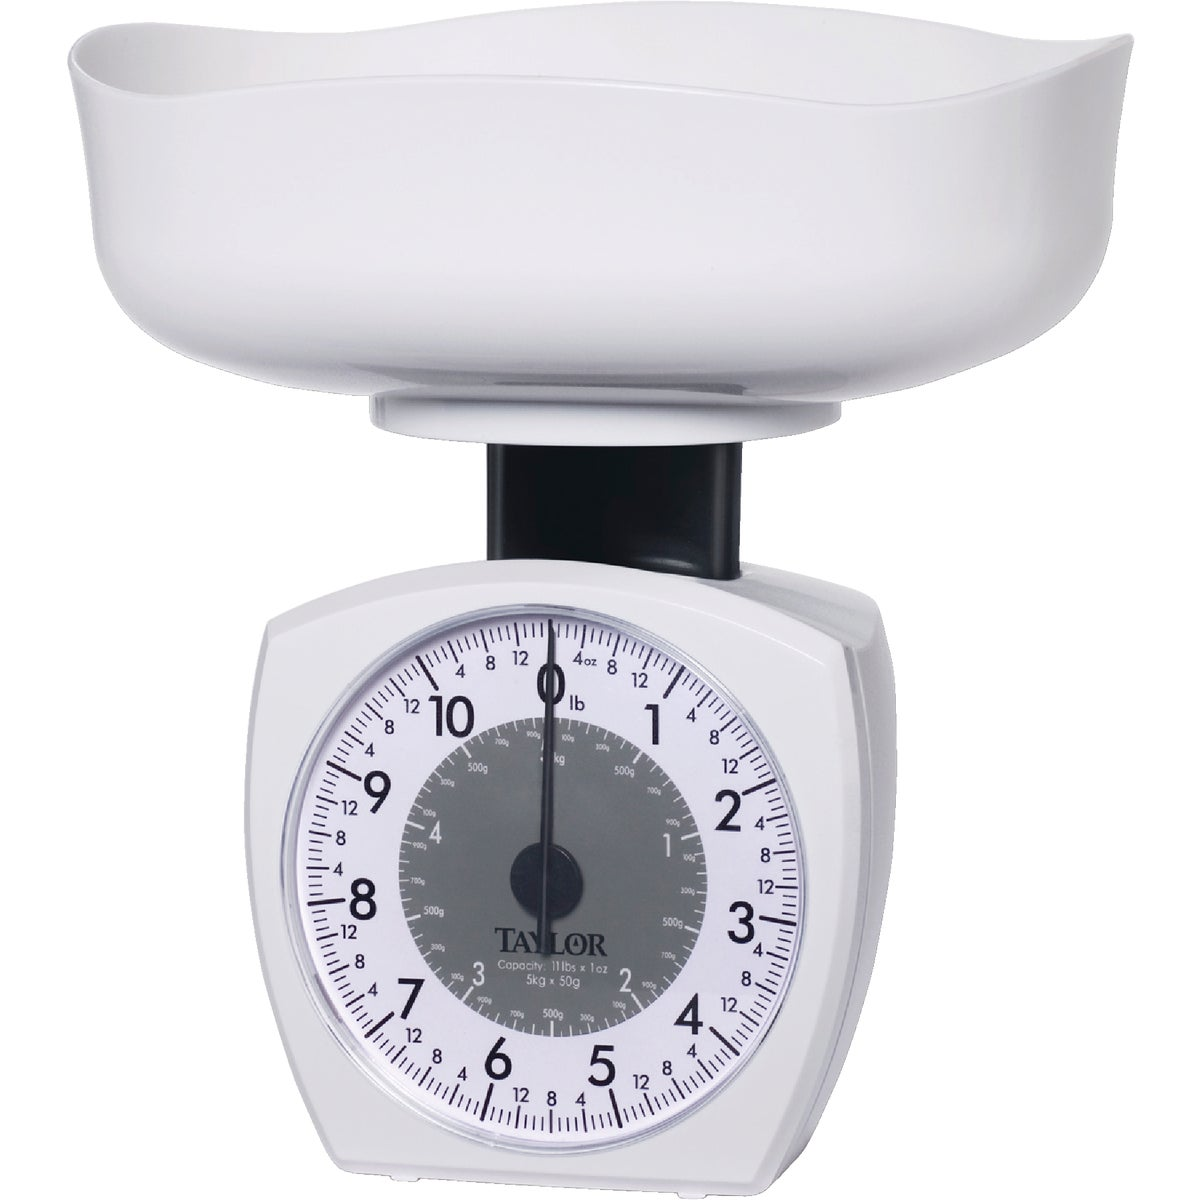 11LB FOOD SCALE